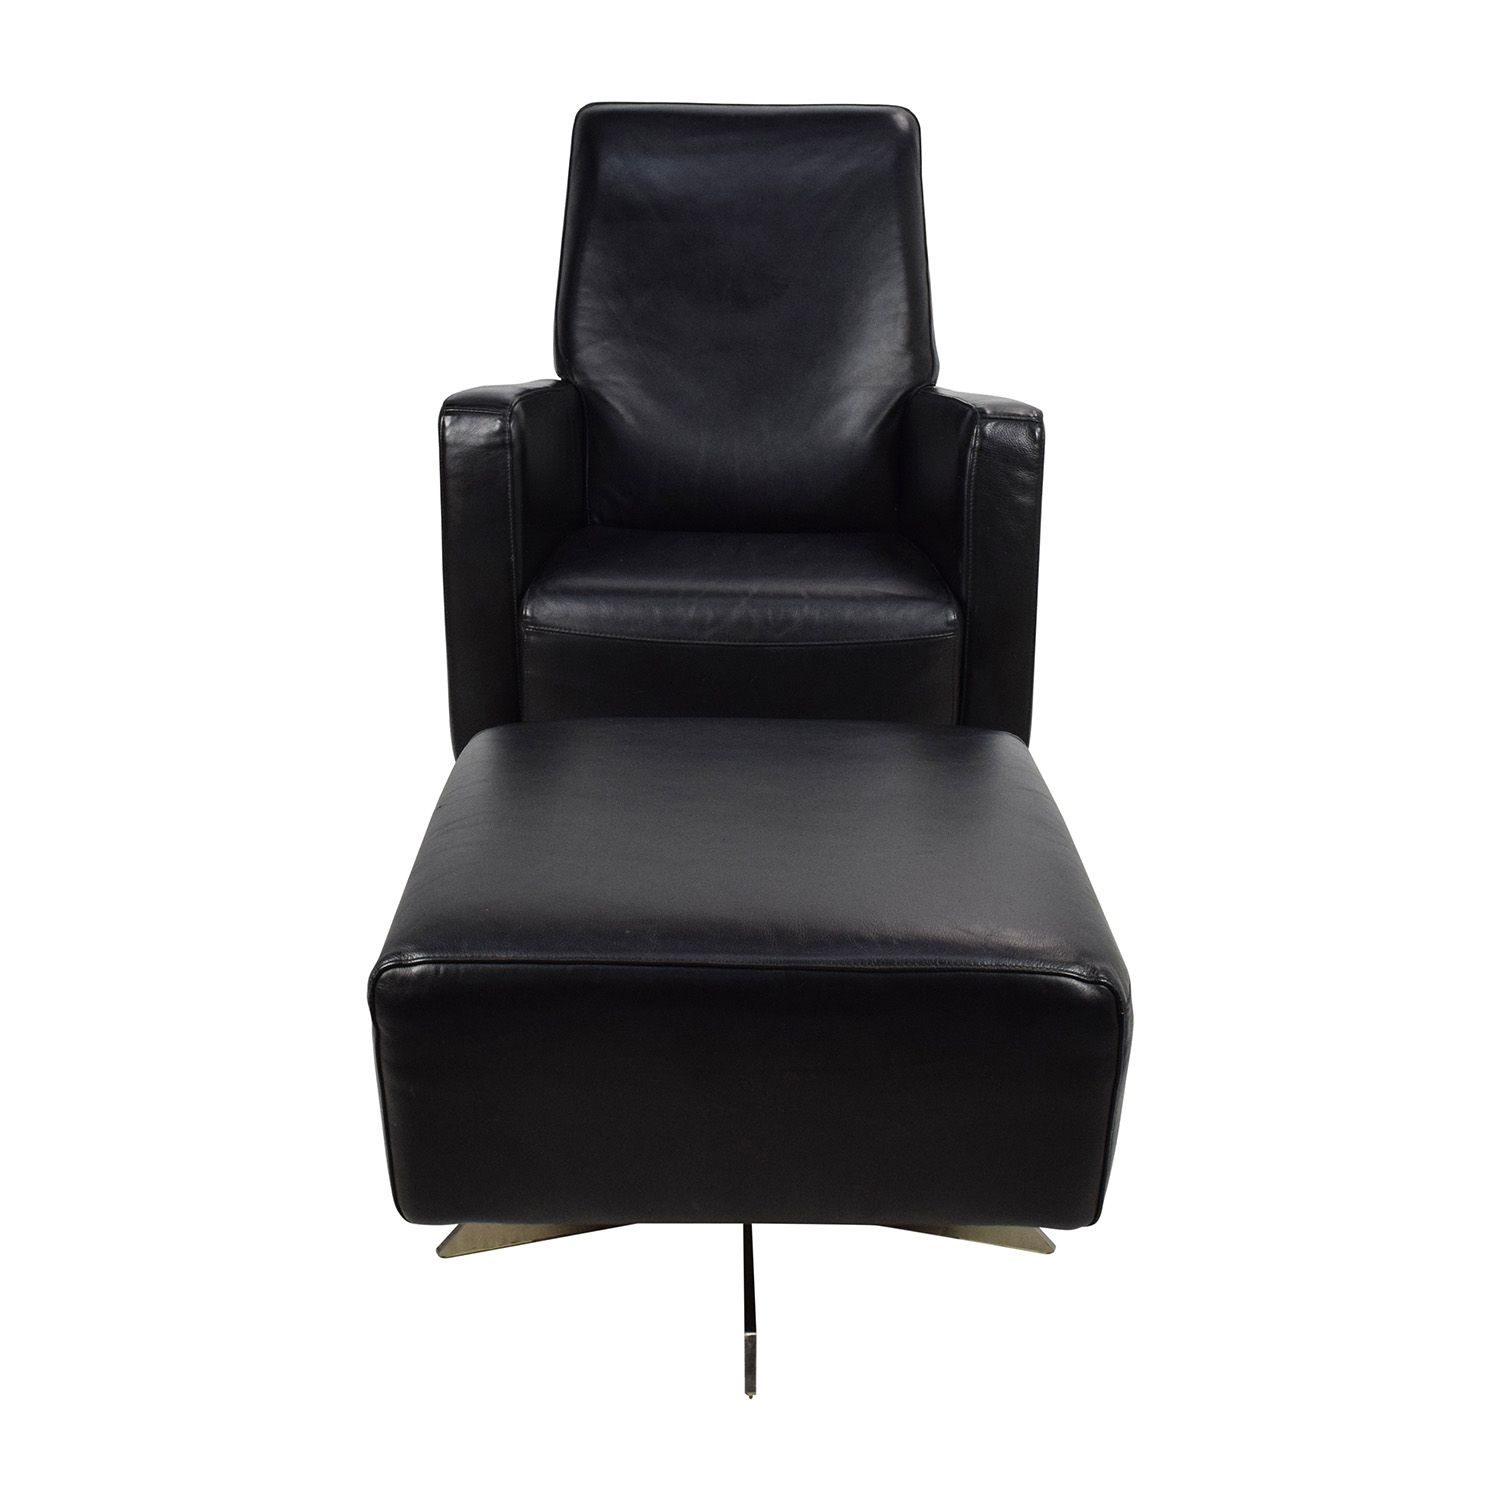 Natuzzi black leather swivel chair with ottoman with